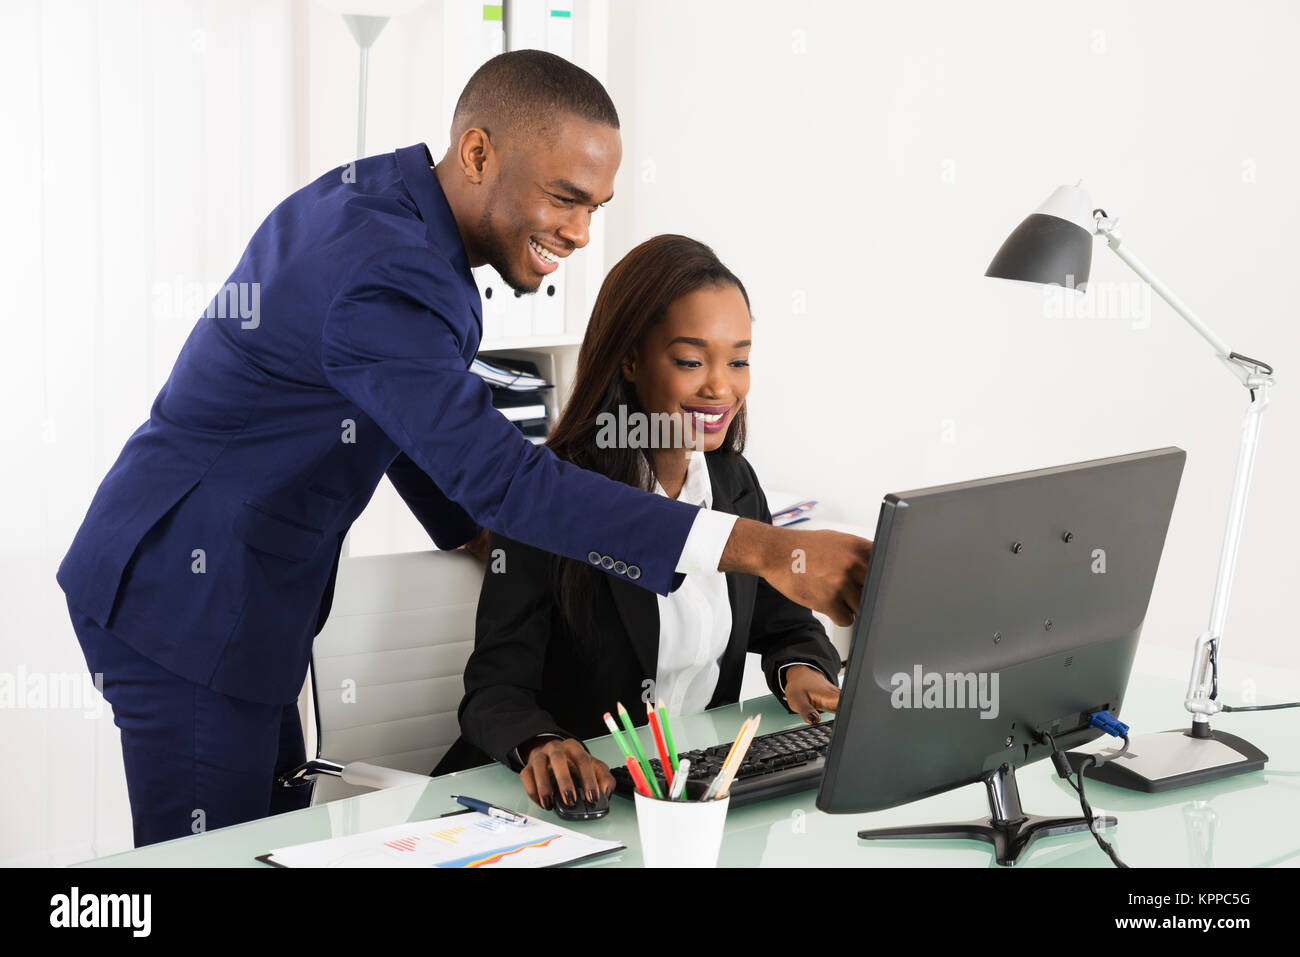 Businesspeople Working On Computer In Office - Stock Image